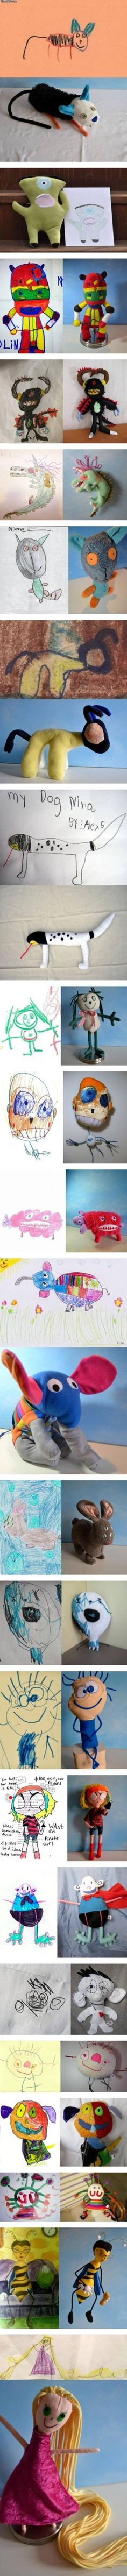 Stuffed stuff:  kid's drawings as the inspiration for stuffed animals and dolls.